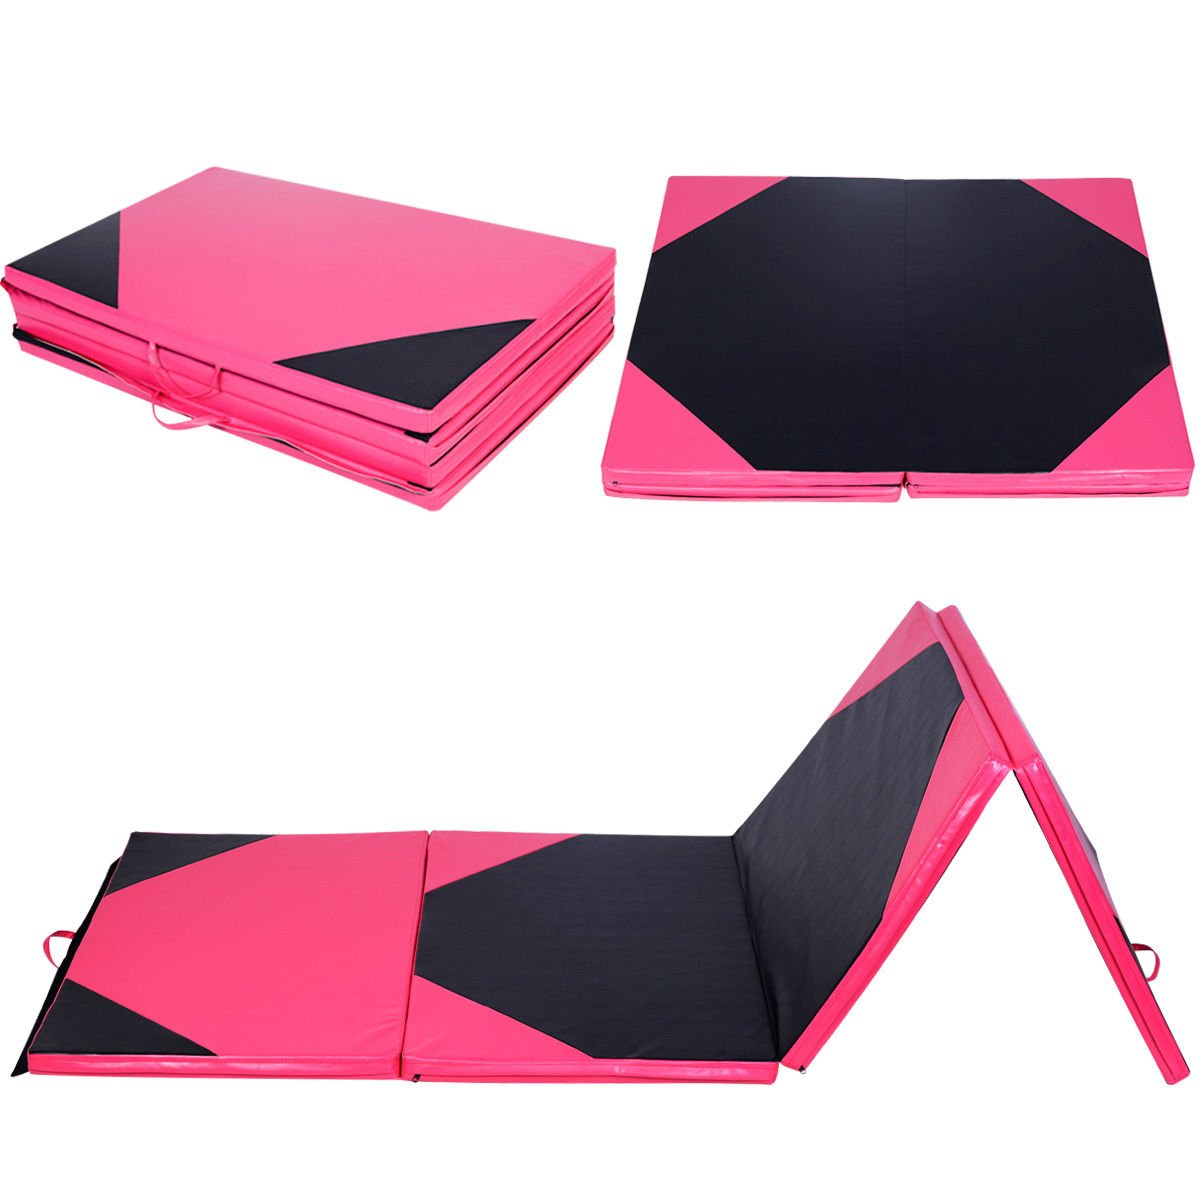 New Brand 1 PCS PU Leather Cover Gymnastics Mat Thick Folding Panel Gym Fitness Exercise Color Pink & Black Size 4'x10'x2'' by SASUPANSHOP